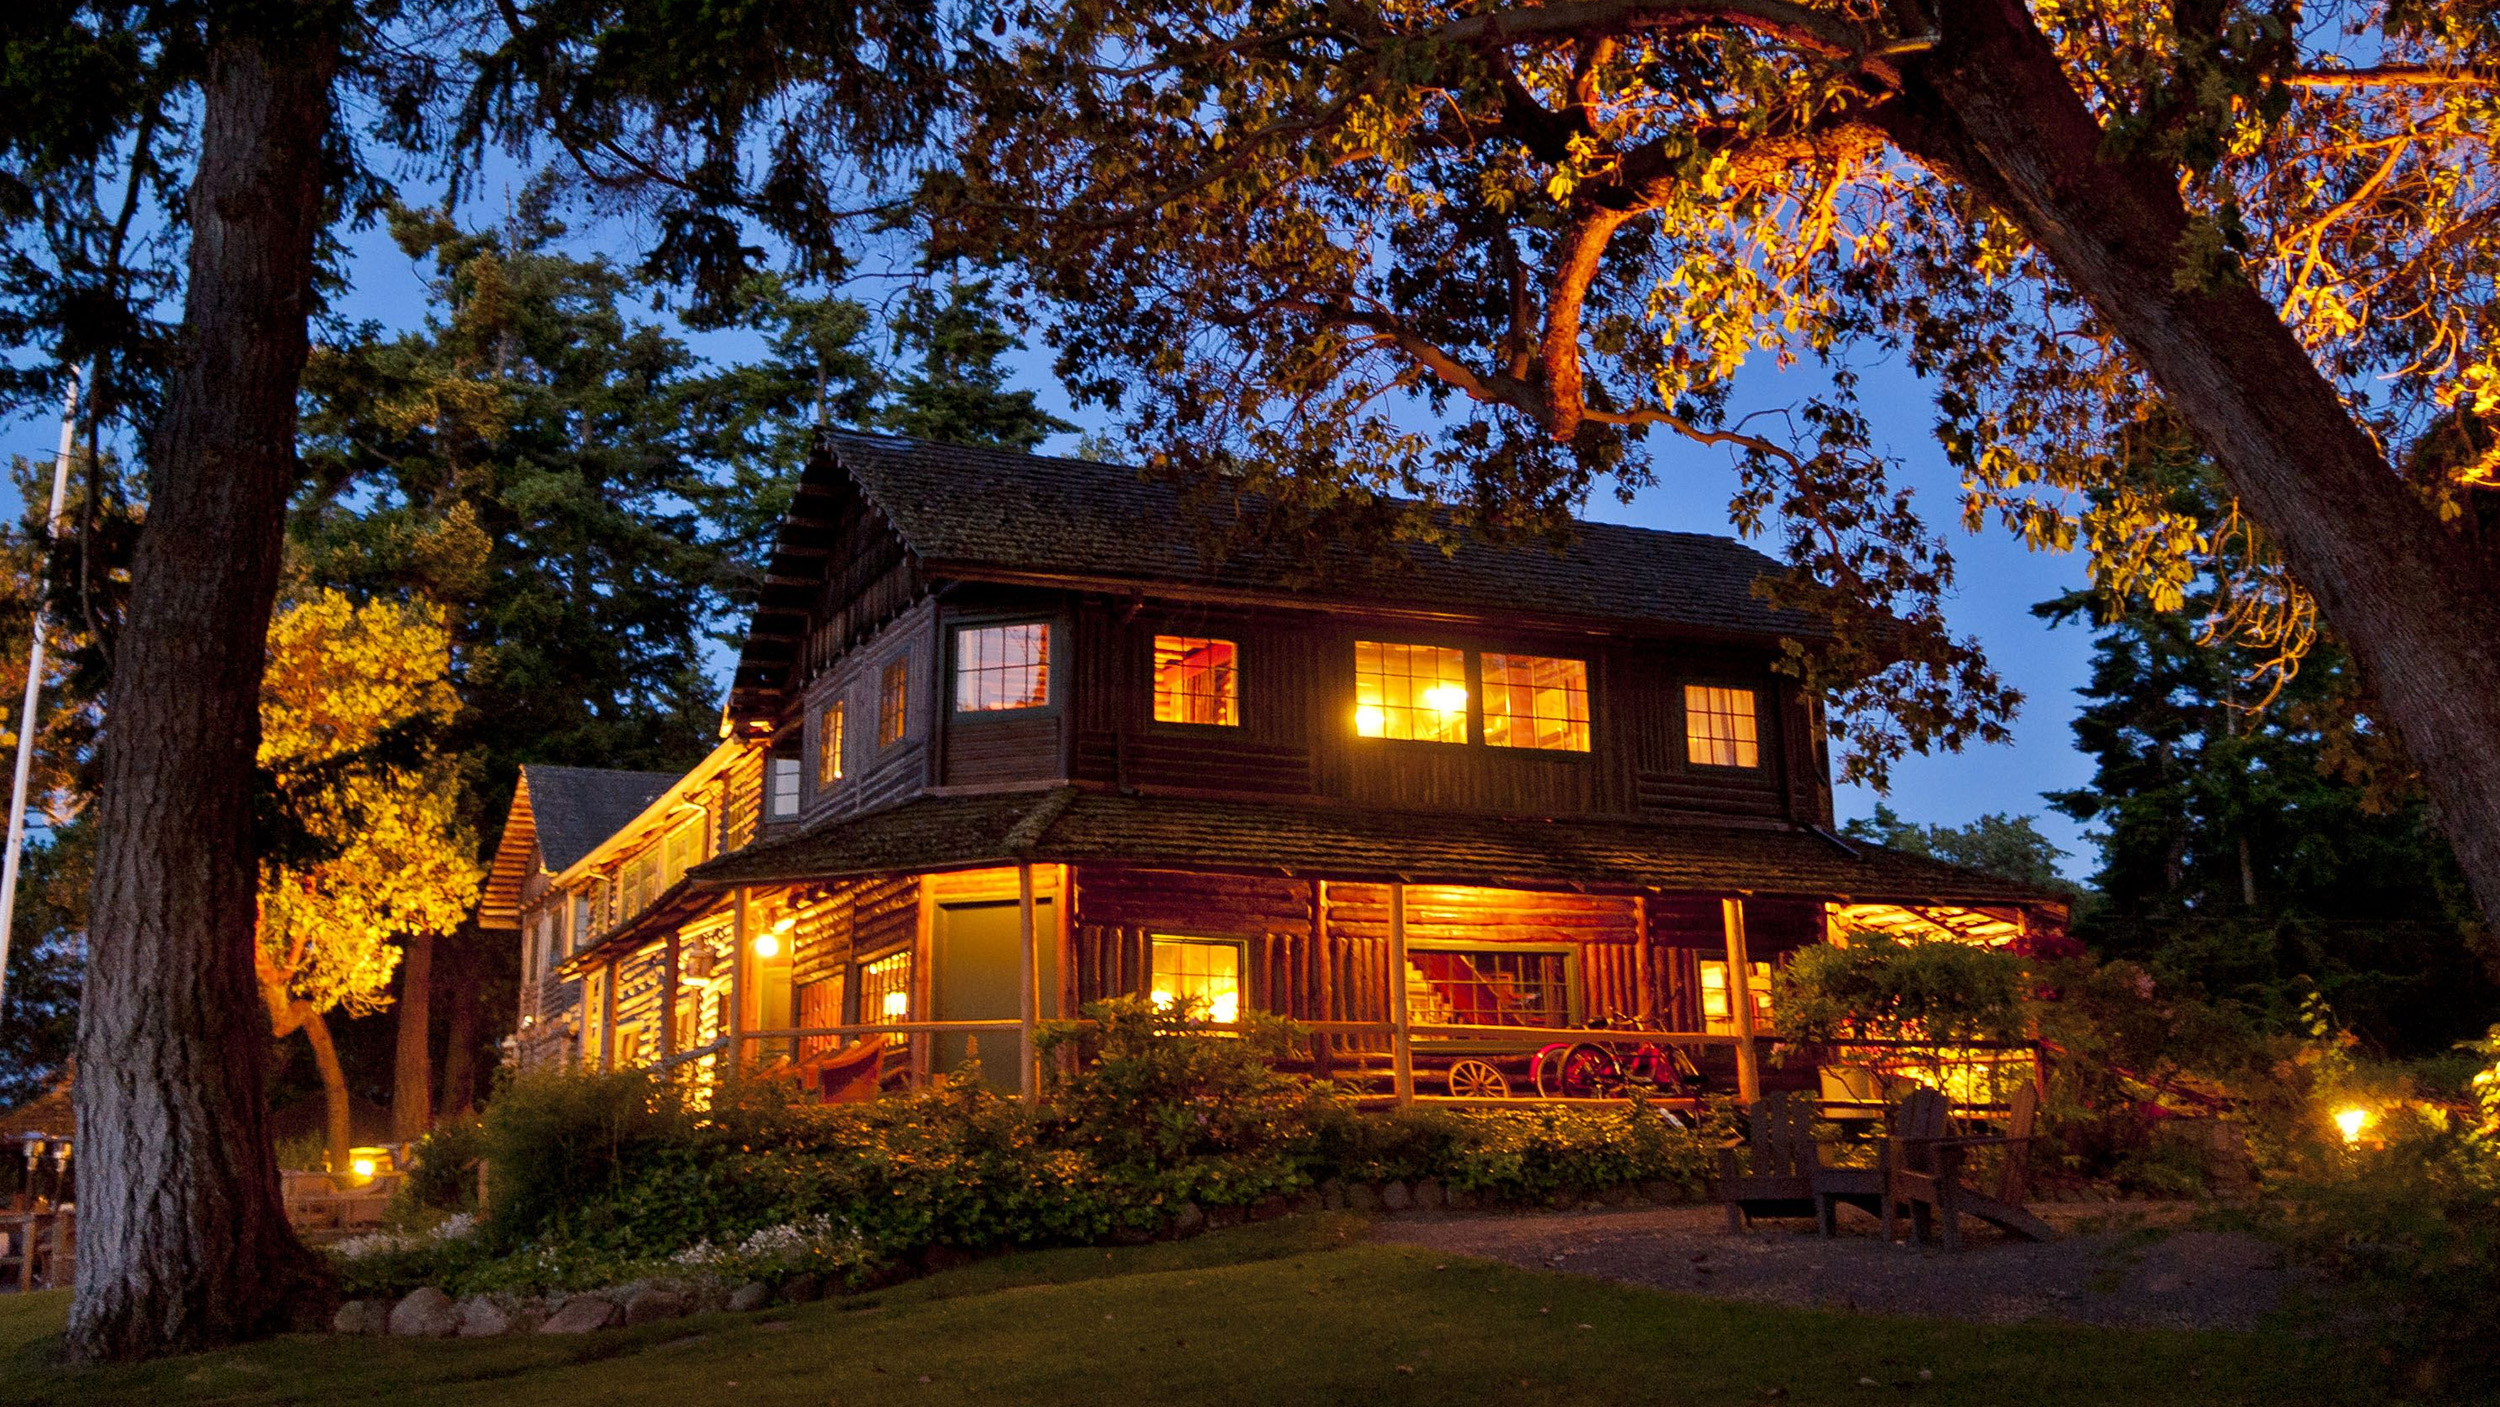 The Captain Whidbey Inn lodge at night. Pacific Northwest cabin rentals and one of the best lodges in Washington State.